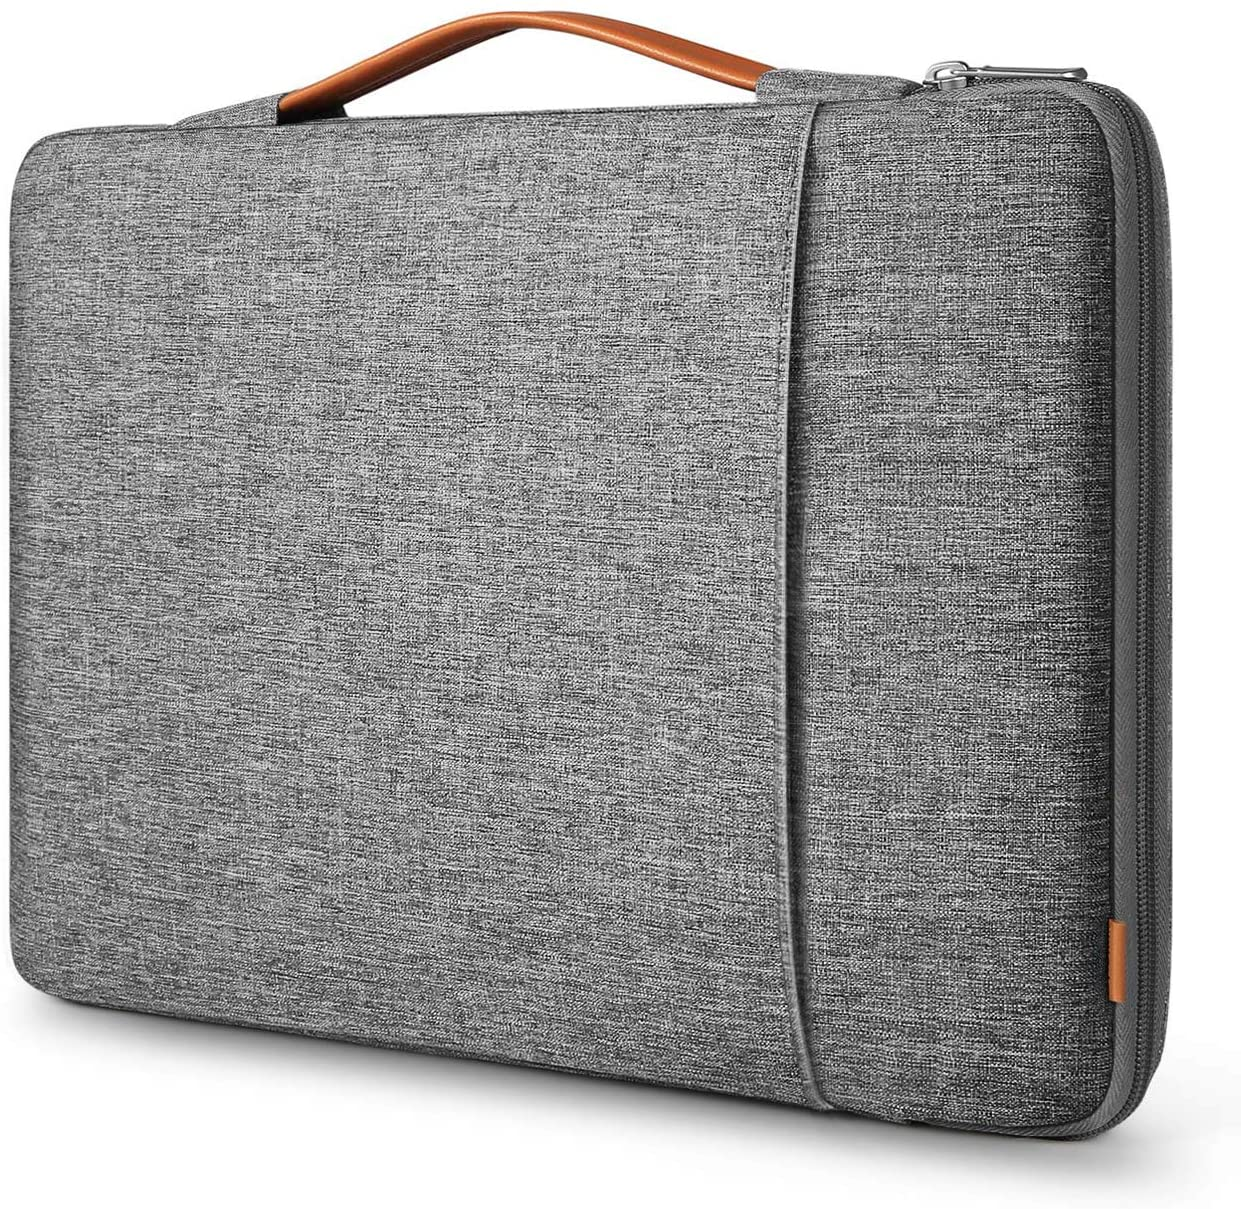 Inateck 15-15.6 Inch 360 Protection Shockproof Laptop Sleeve Carrying Case LB02006-15, Gray